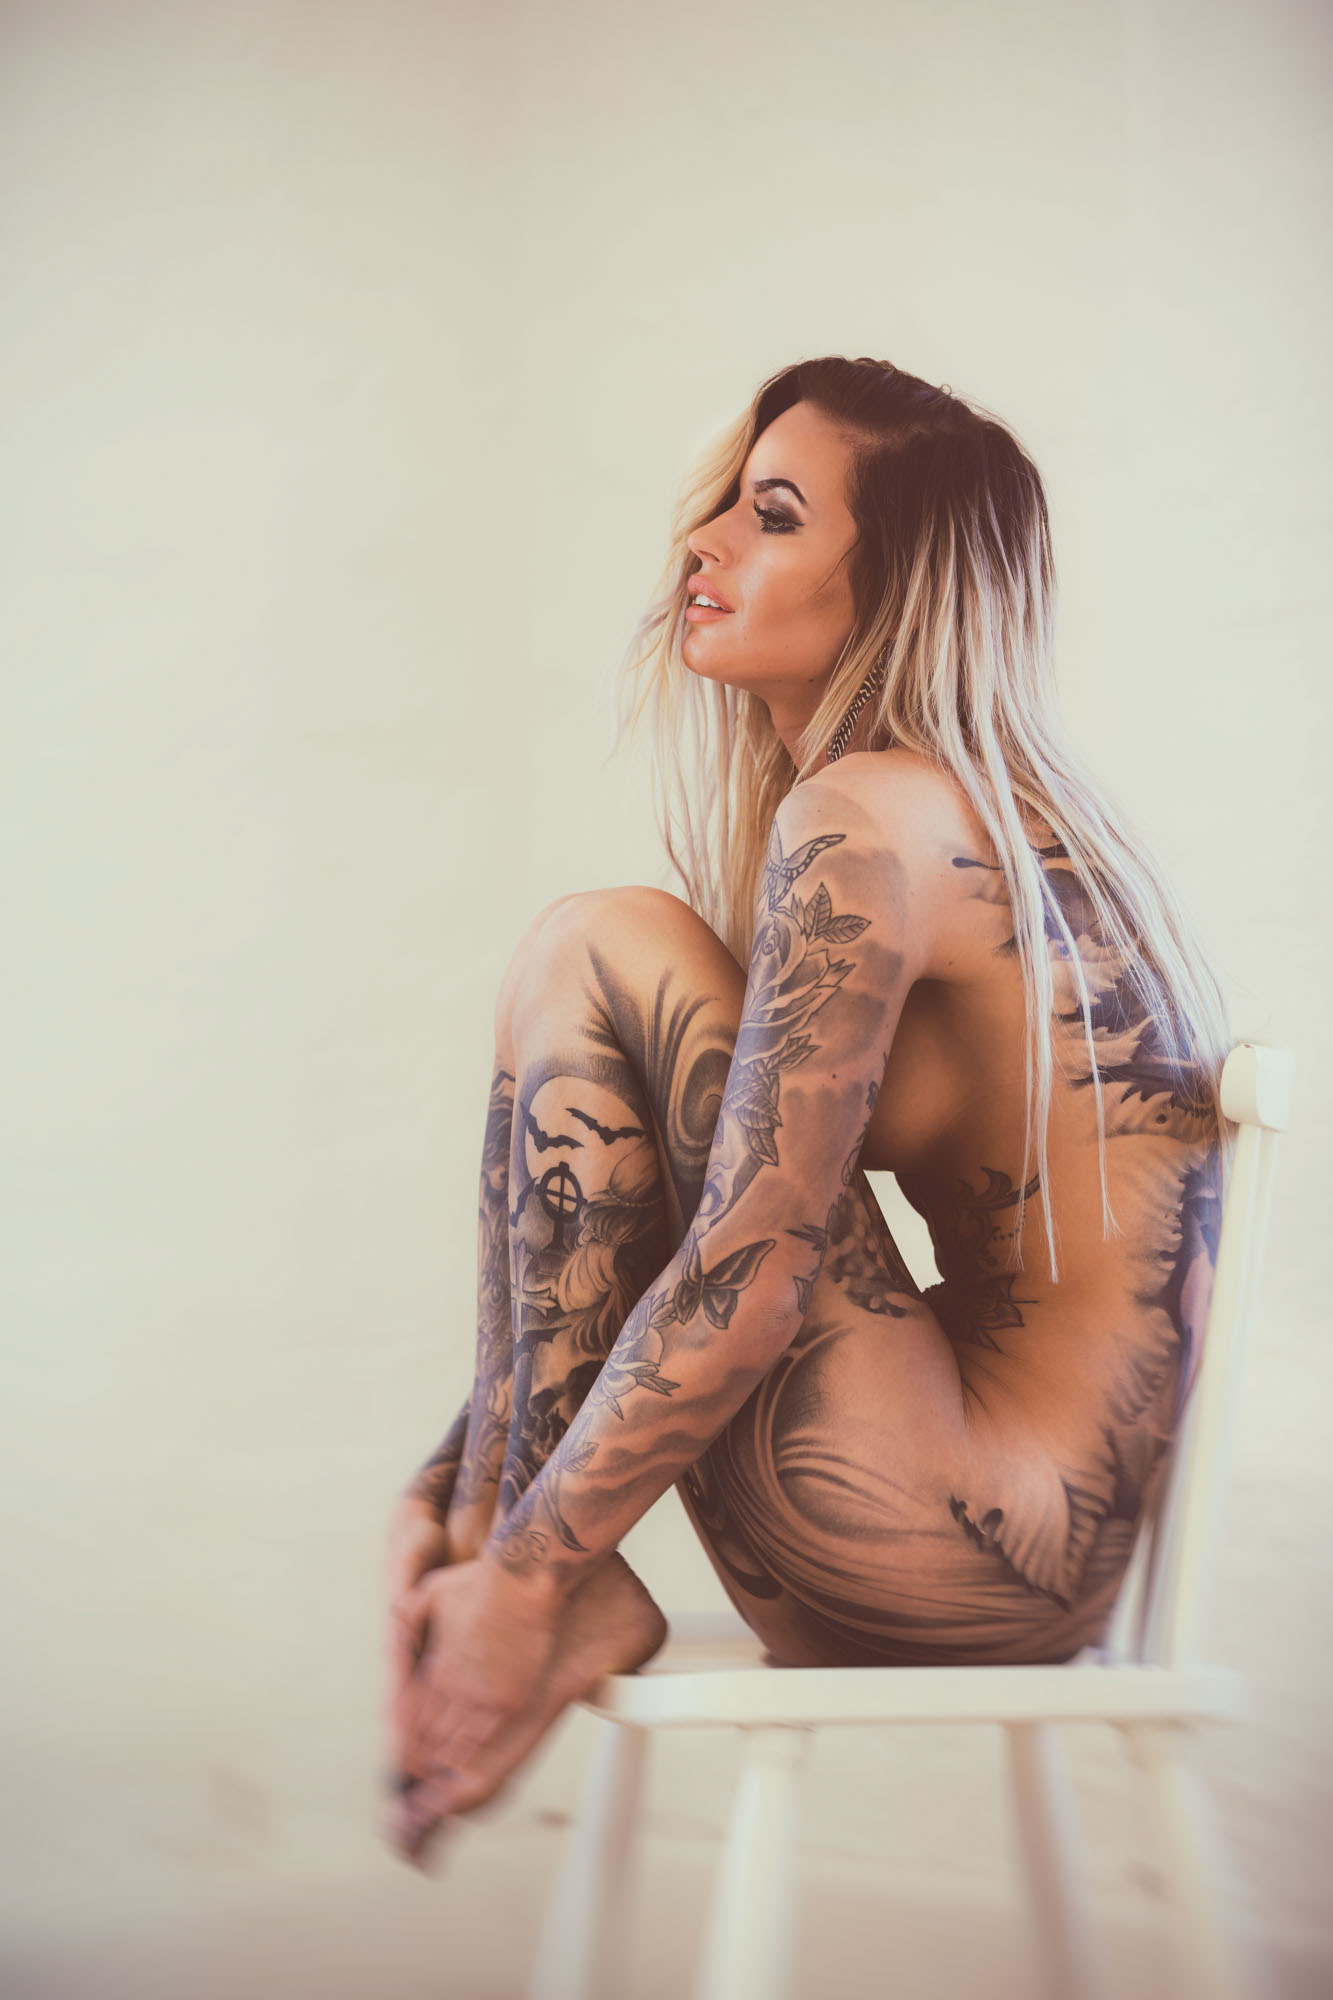 Nude sex with tattoos